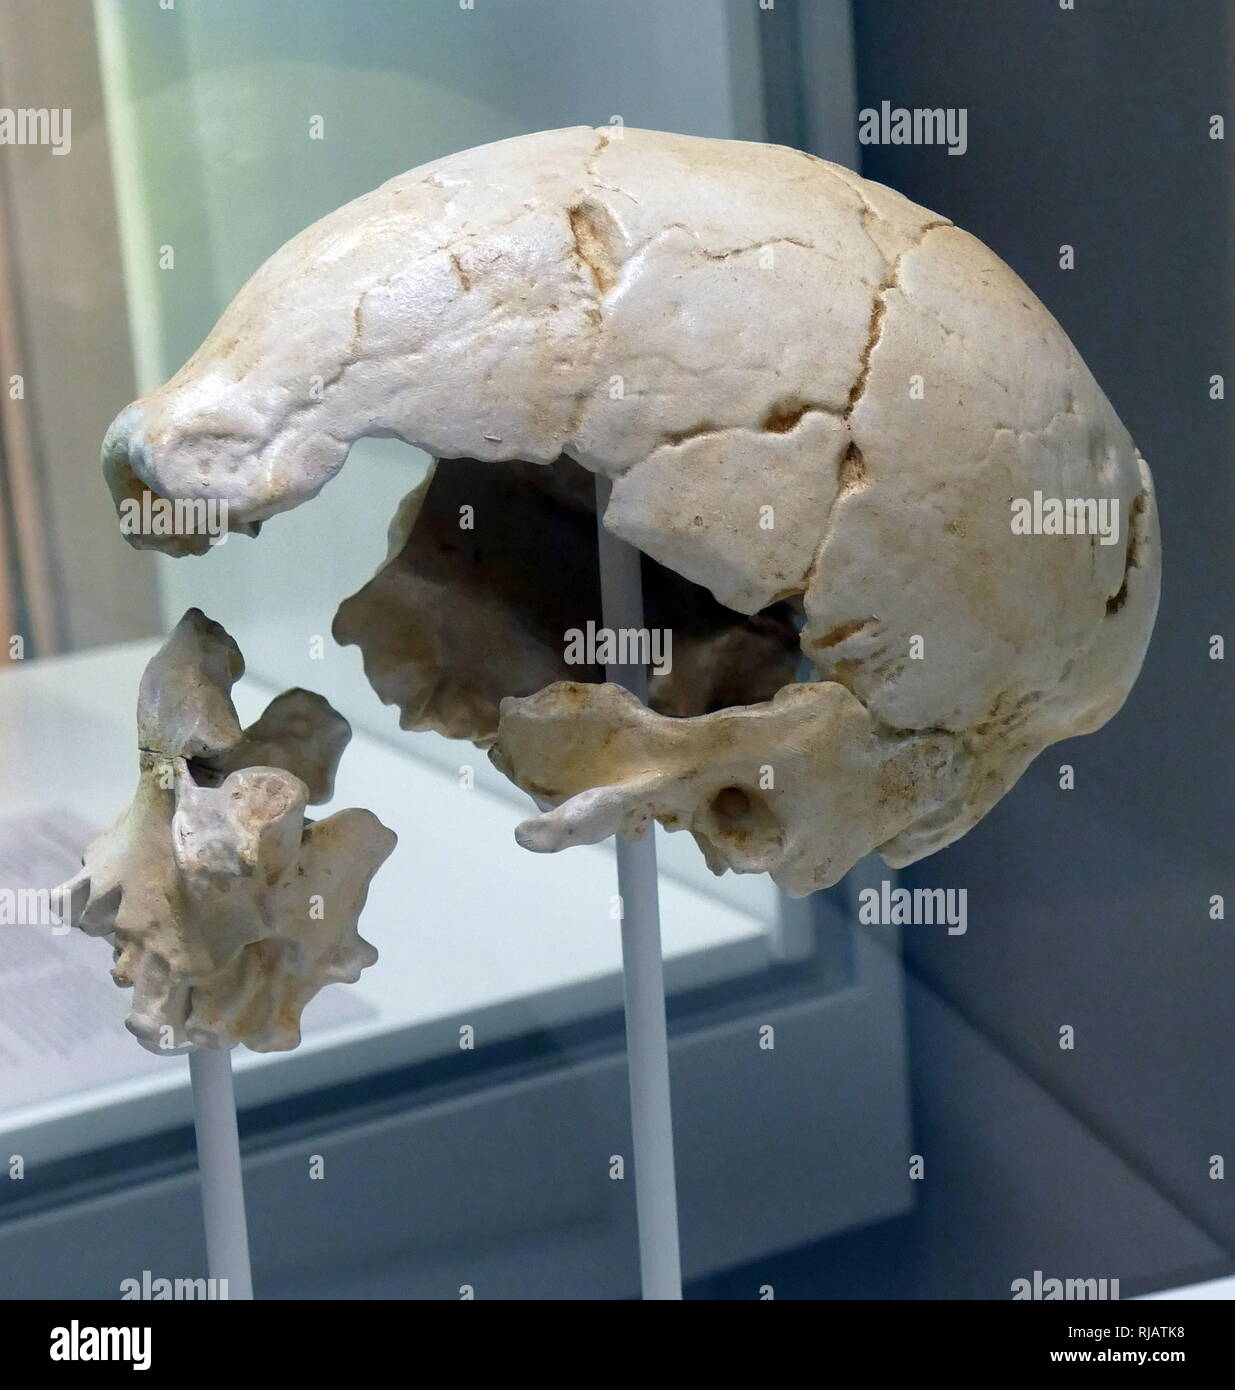 In 1976, a fossil hominid skull was recovered from the Ngaloba Beds at Laetoli, Northern Tanzania; The discovery of this skull is of great interest and importance because of its very substantial presumed antiquity and its largely anatomically modern morphology. The discovery has considerable implications for the antiquity and origin of modern Homo sapiens, a subject of longstanding interest and one which has gained renewed attention recently. - Stock Image